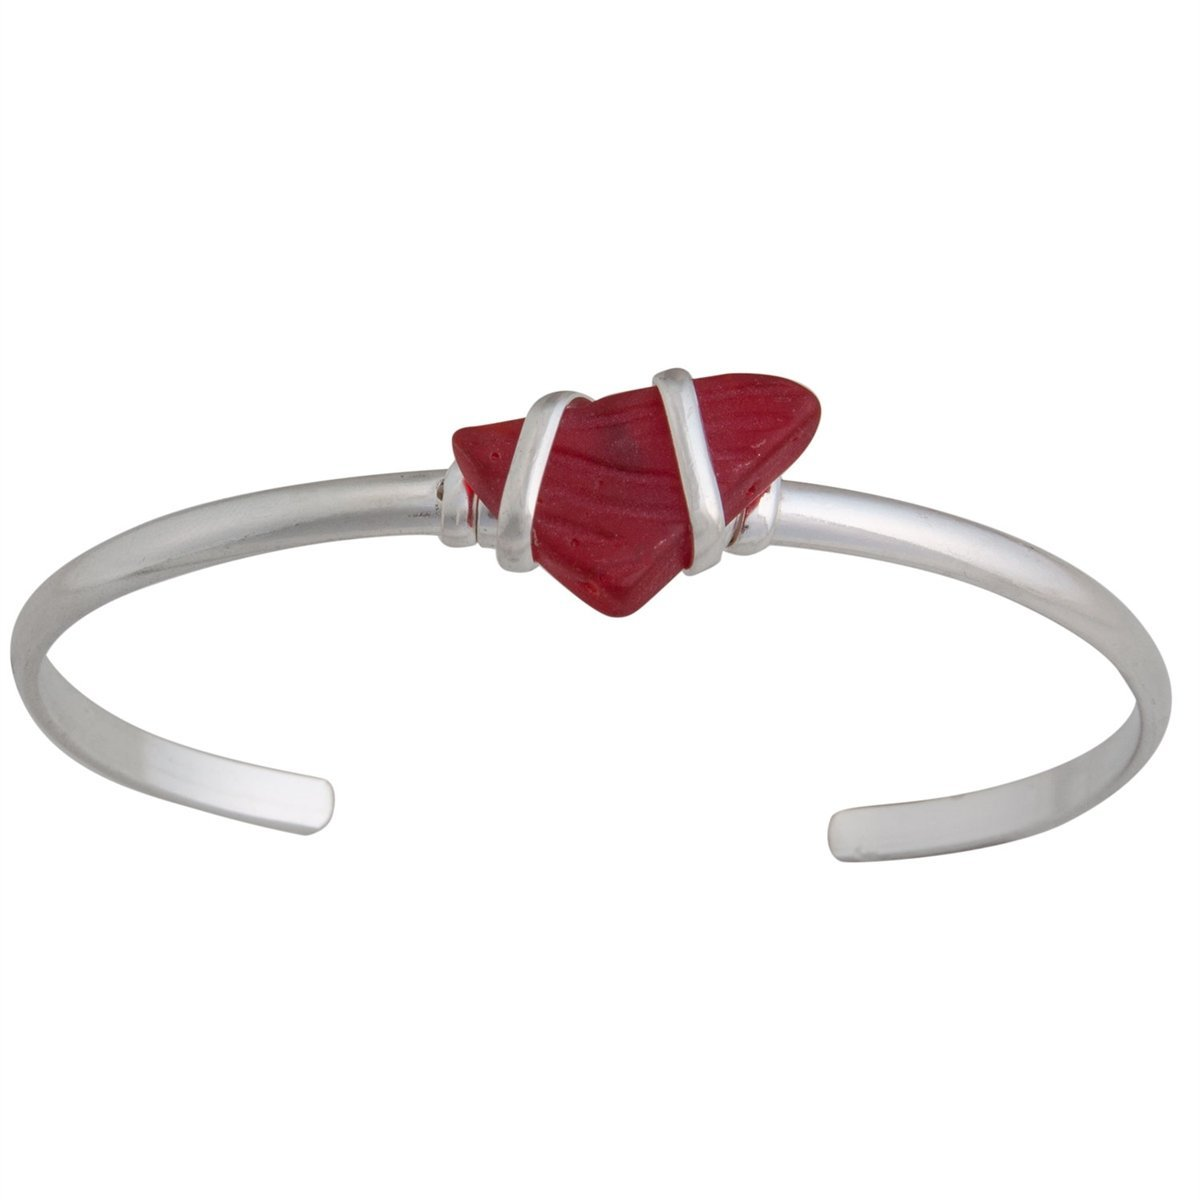 alpaca-recycled-glass-mini-cuff-red - 1 - Charles Albert Inc